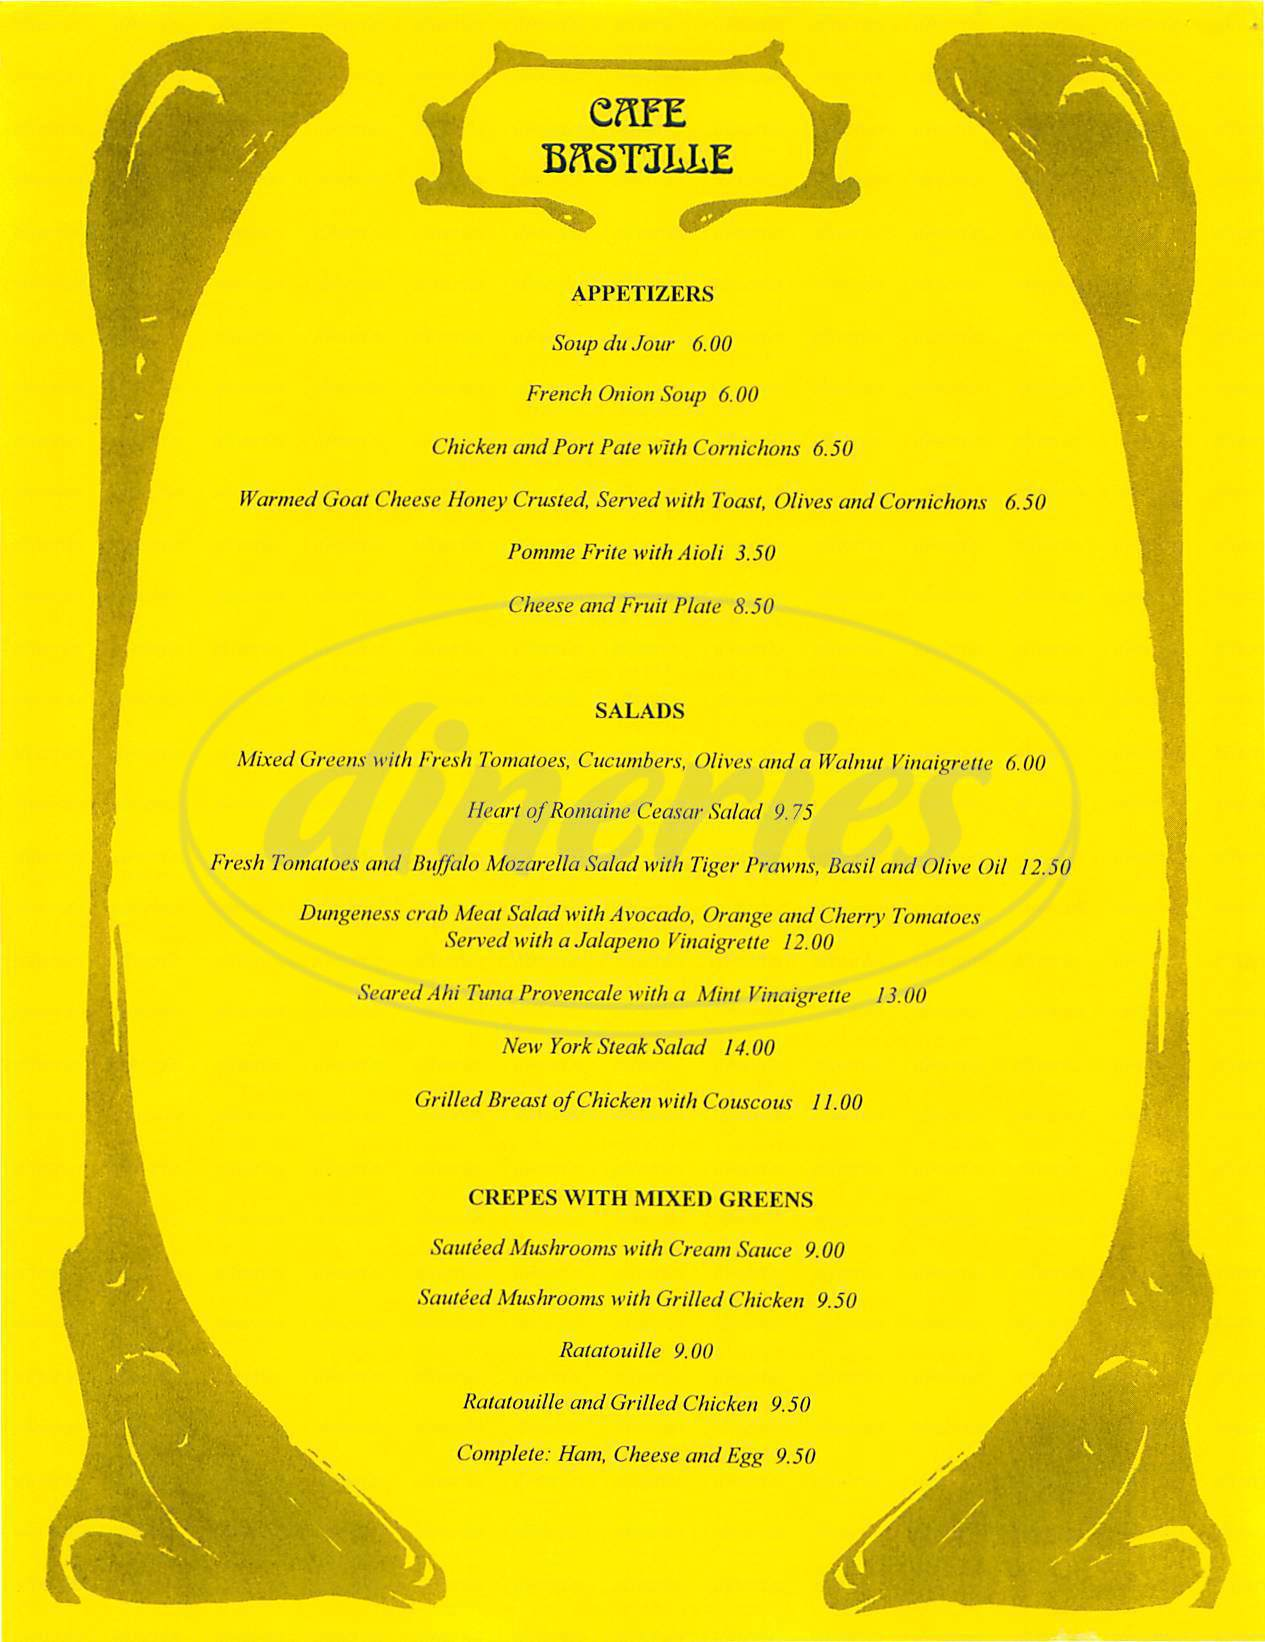 menu for Cafe Bastille